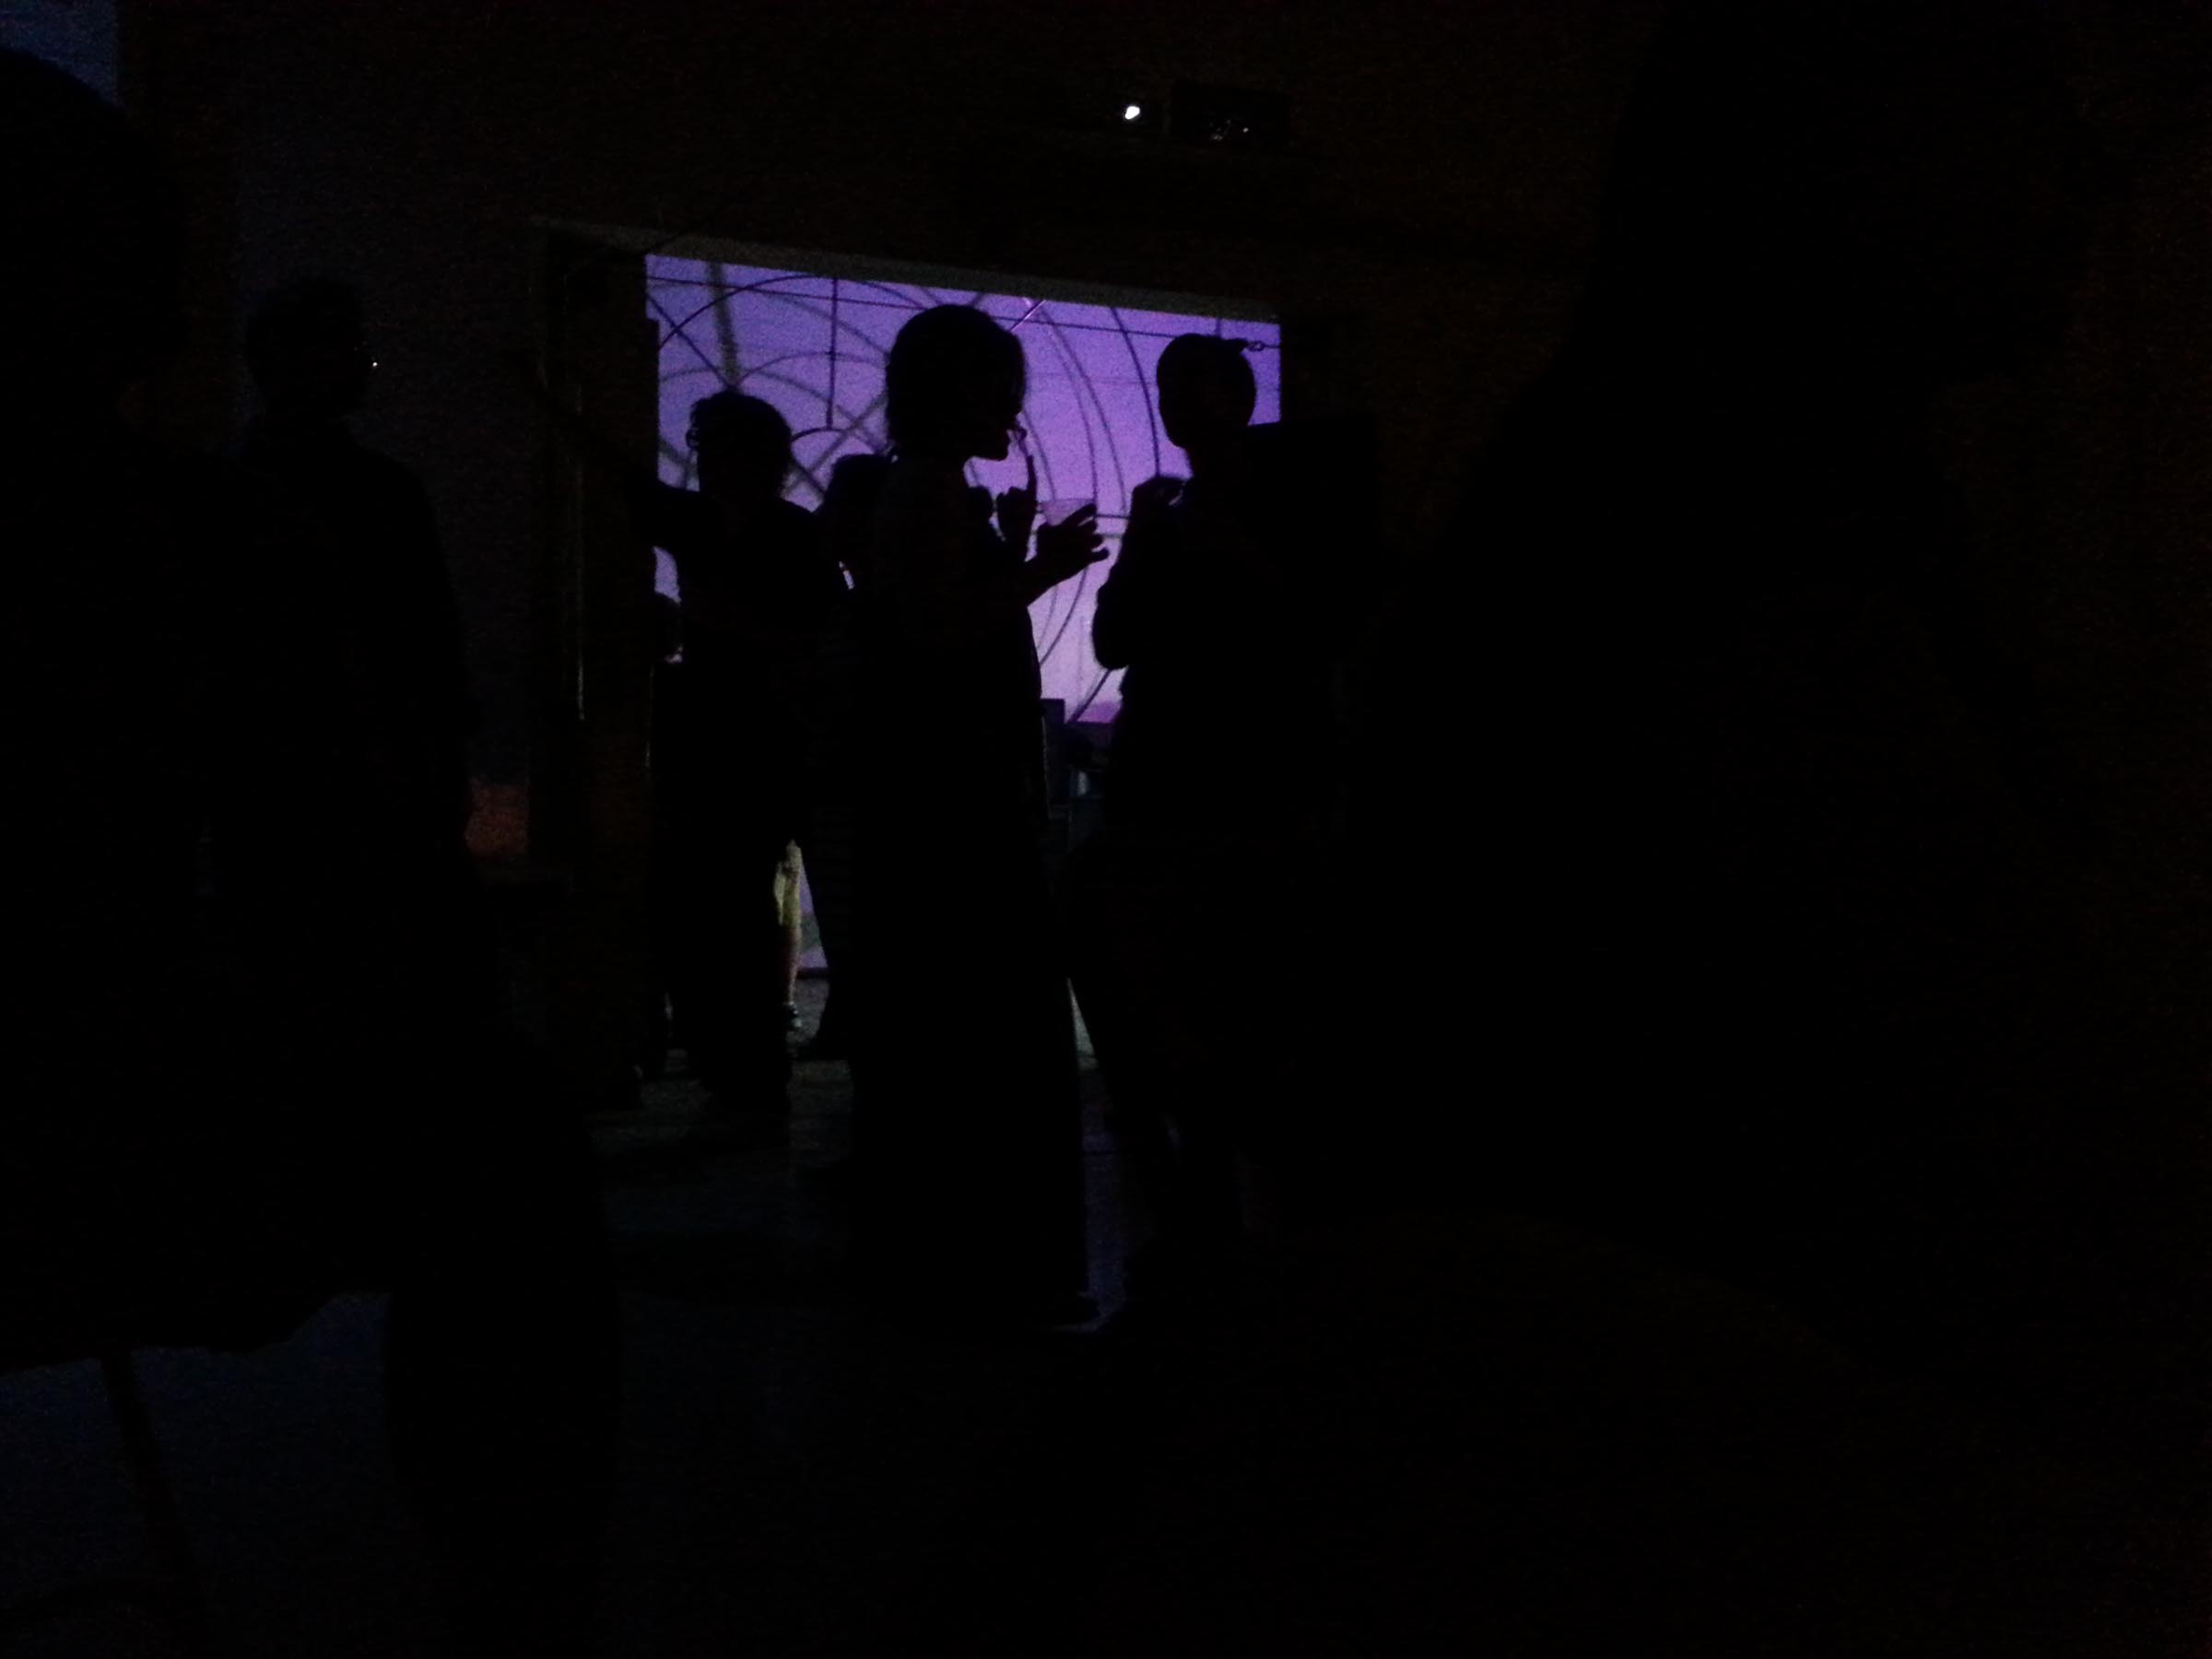 A darkened room with an illuminated panel on the opposite wall glowing purple, with concentric circular designs on it. It's obscured by the silhouettes of guests mingling.